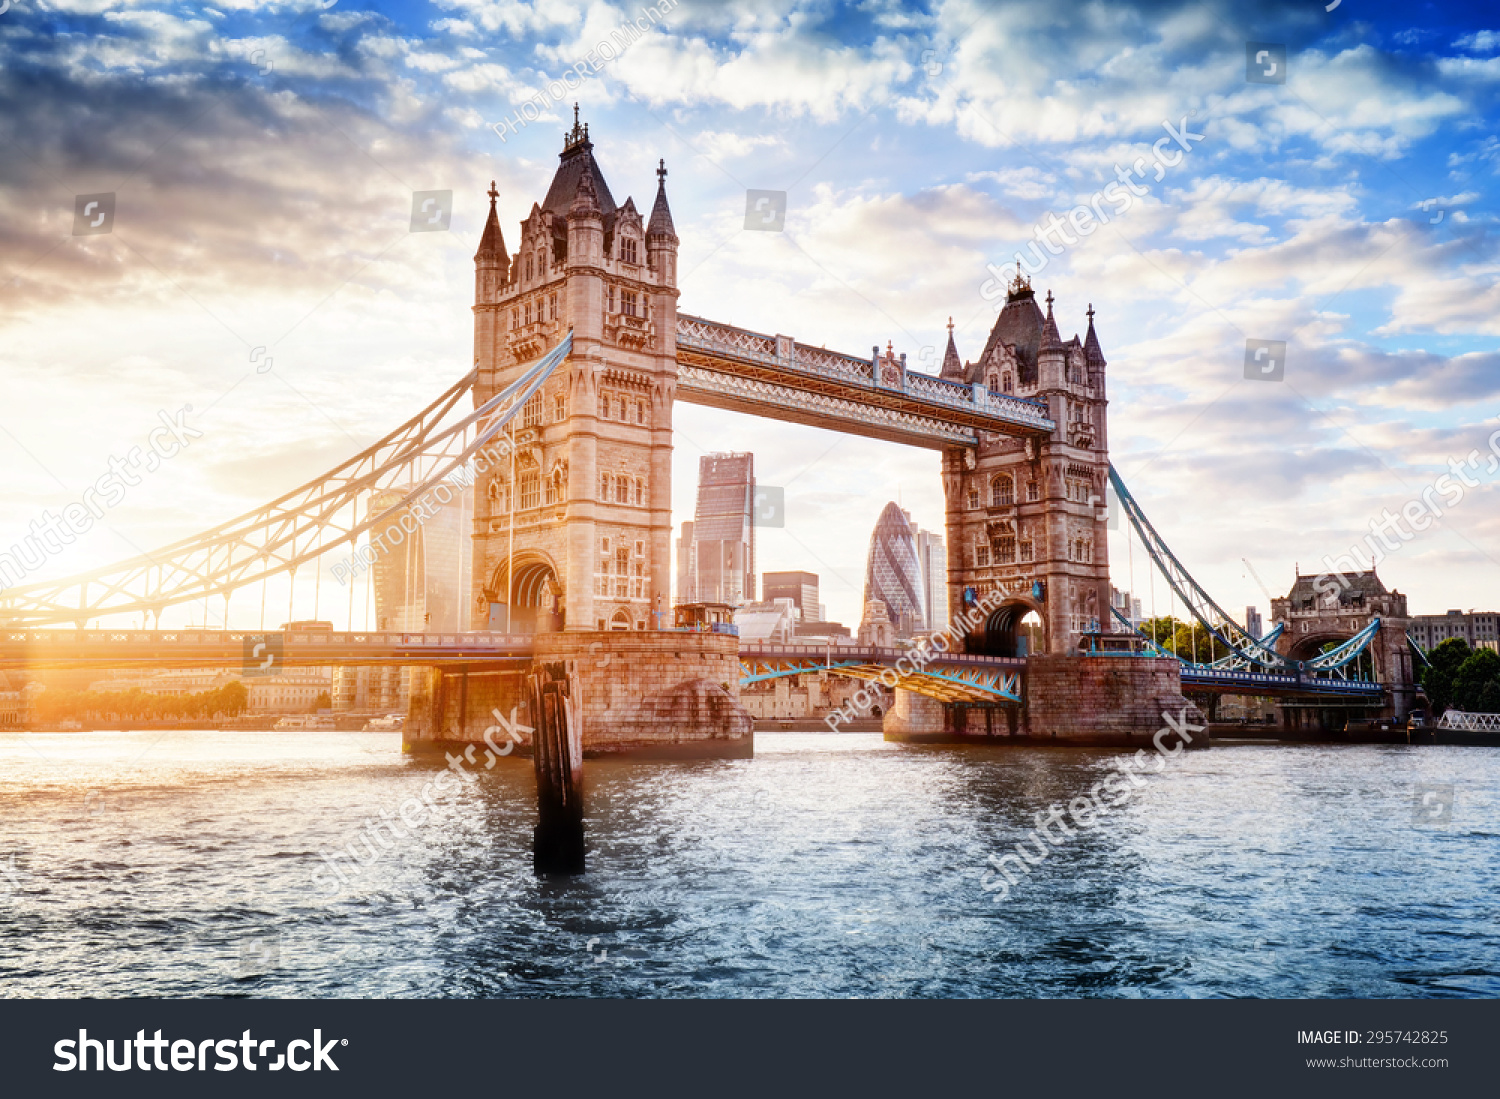 Tower Bridge in London the UK Sunset with beautiful clouds Drawbridge opening One of English symbols